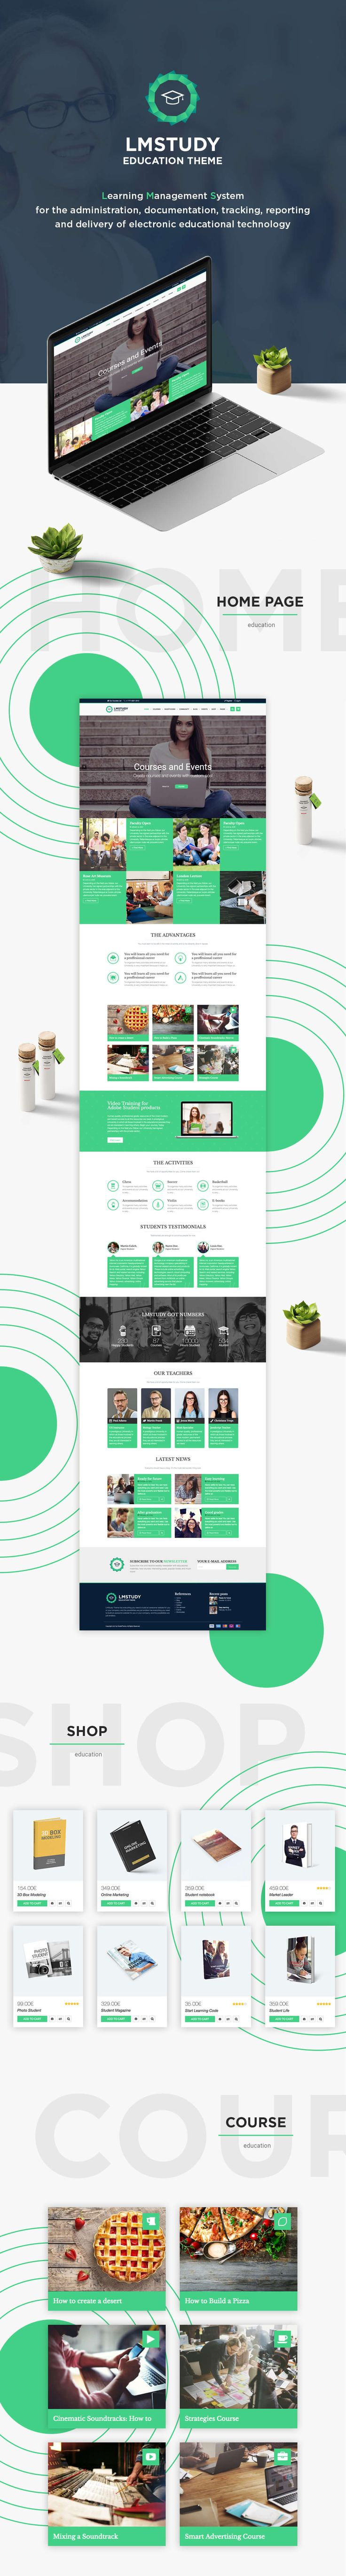 LMStudy - Course / Learning / Education LMS WooCommerce Theme by modeltheme